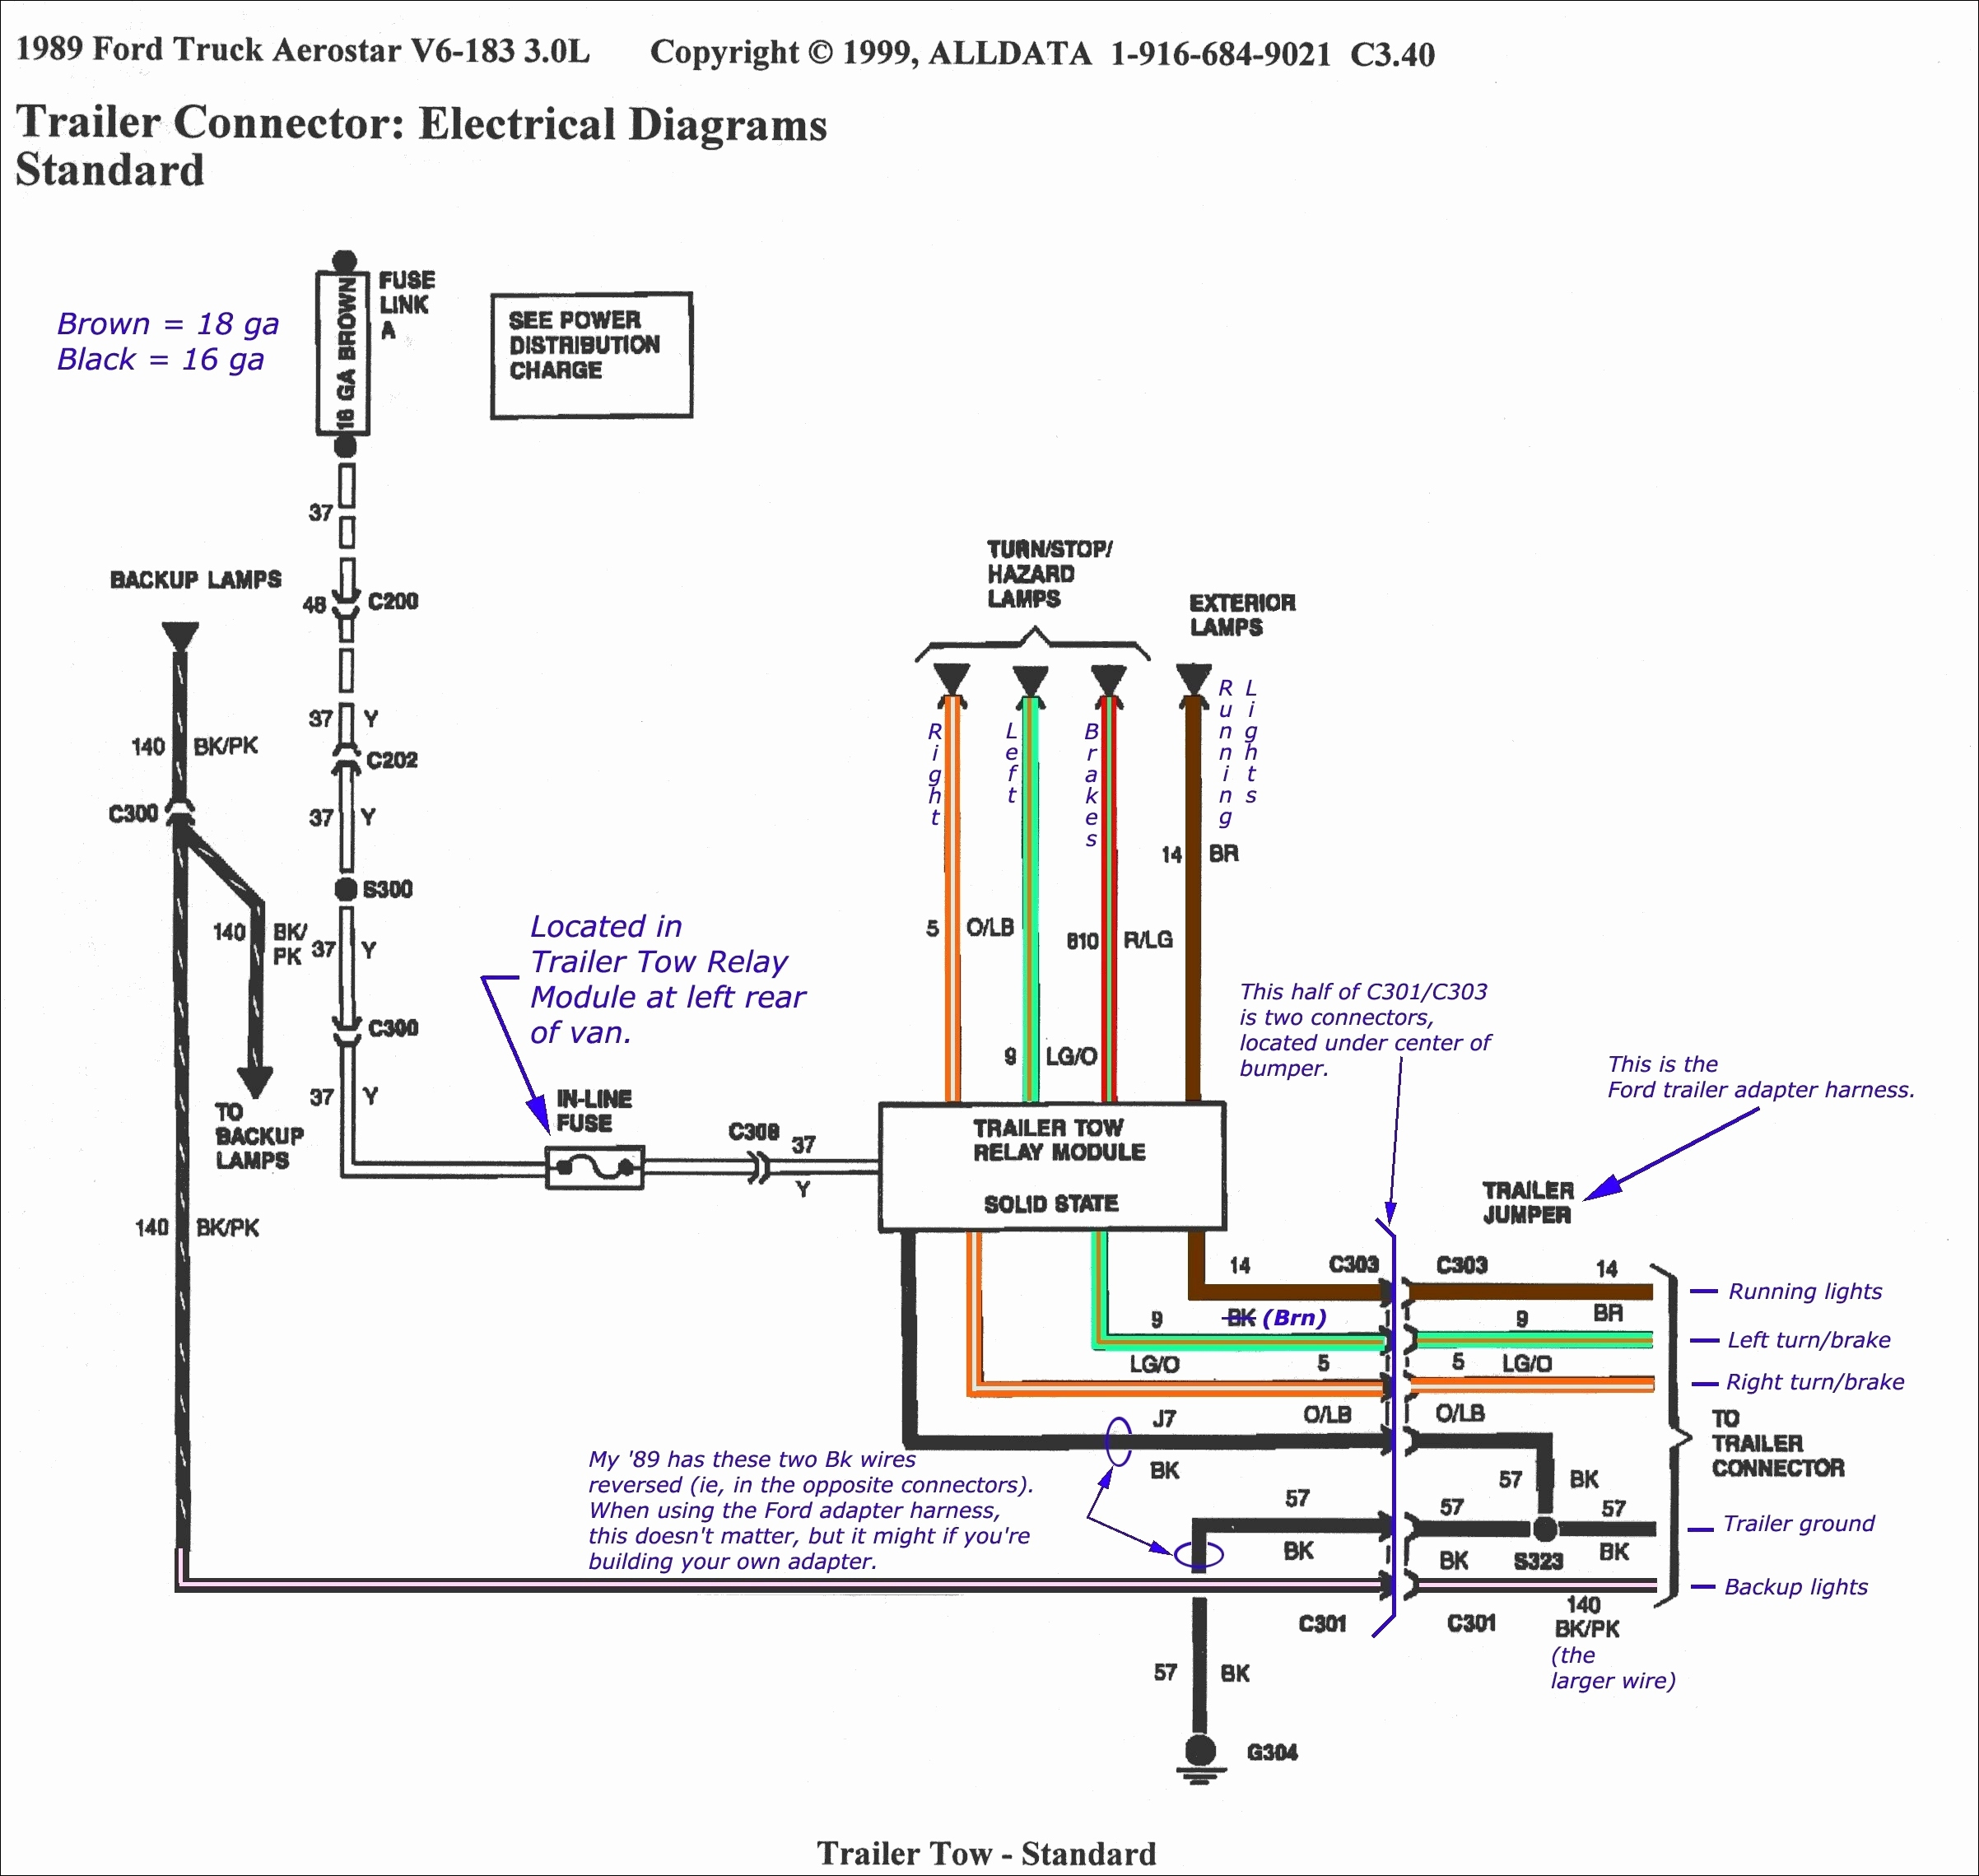 Forest River Wiring Schematics | Wiring Diagram - Forest River Travel Trailer Wiring Diagram